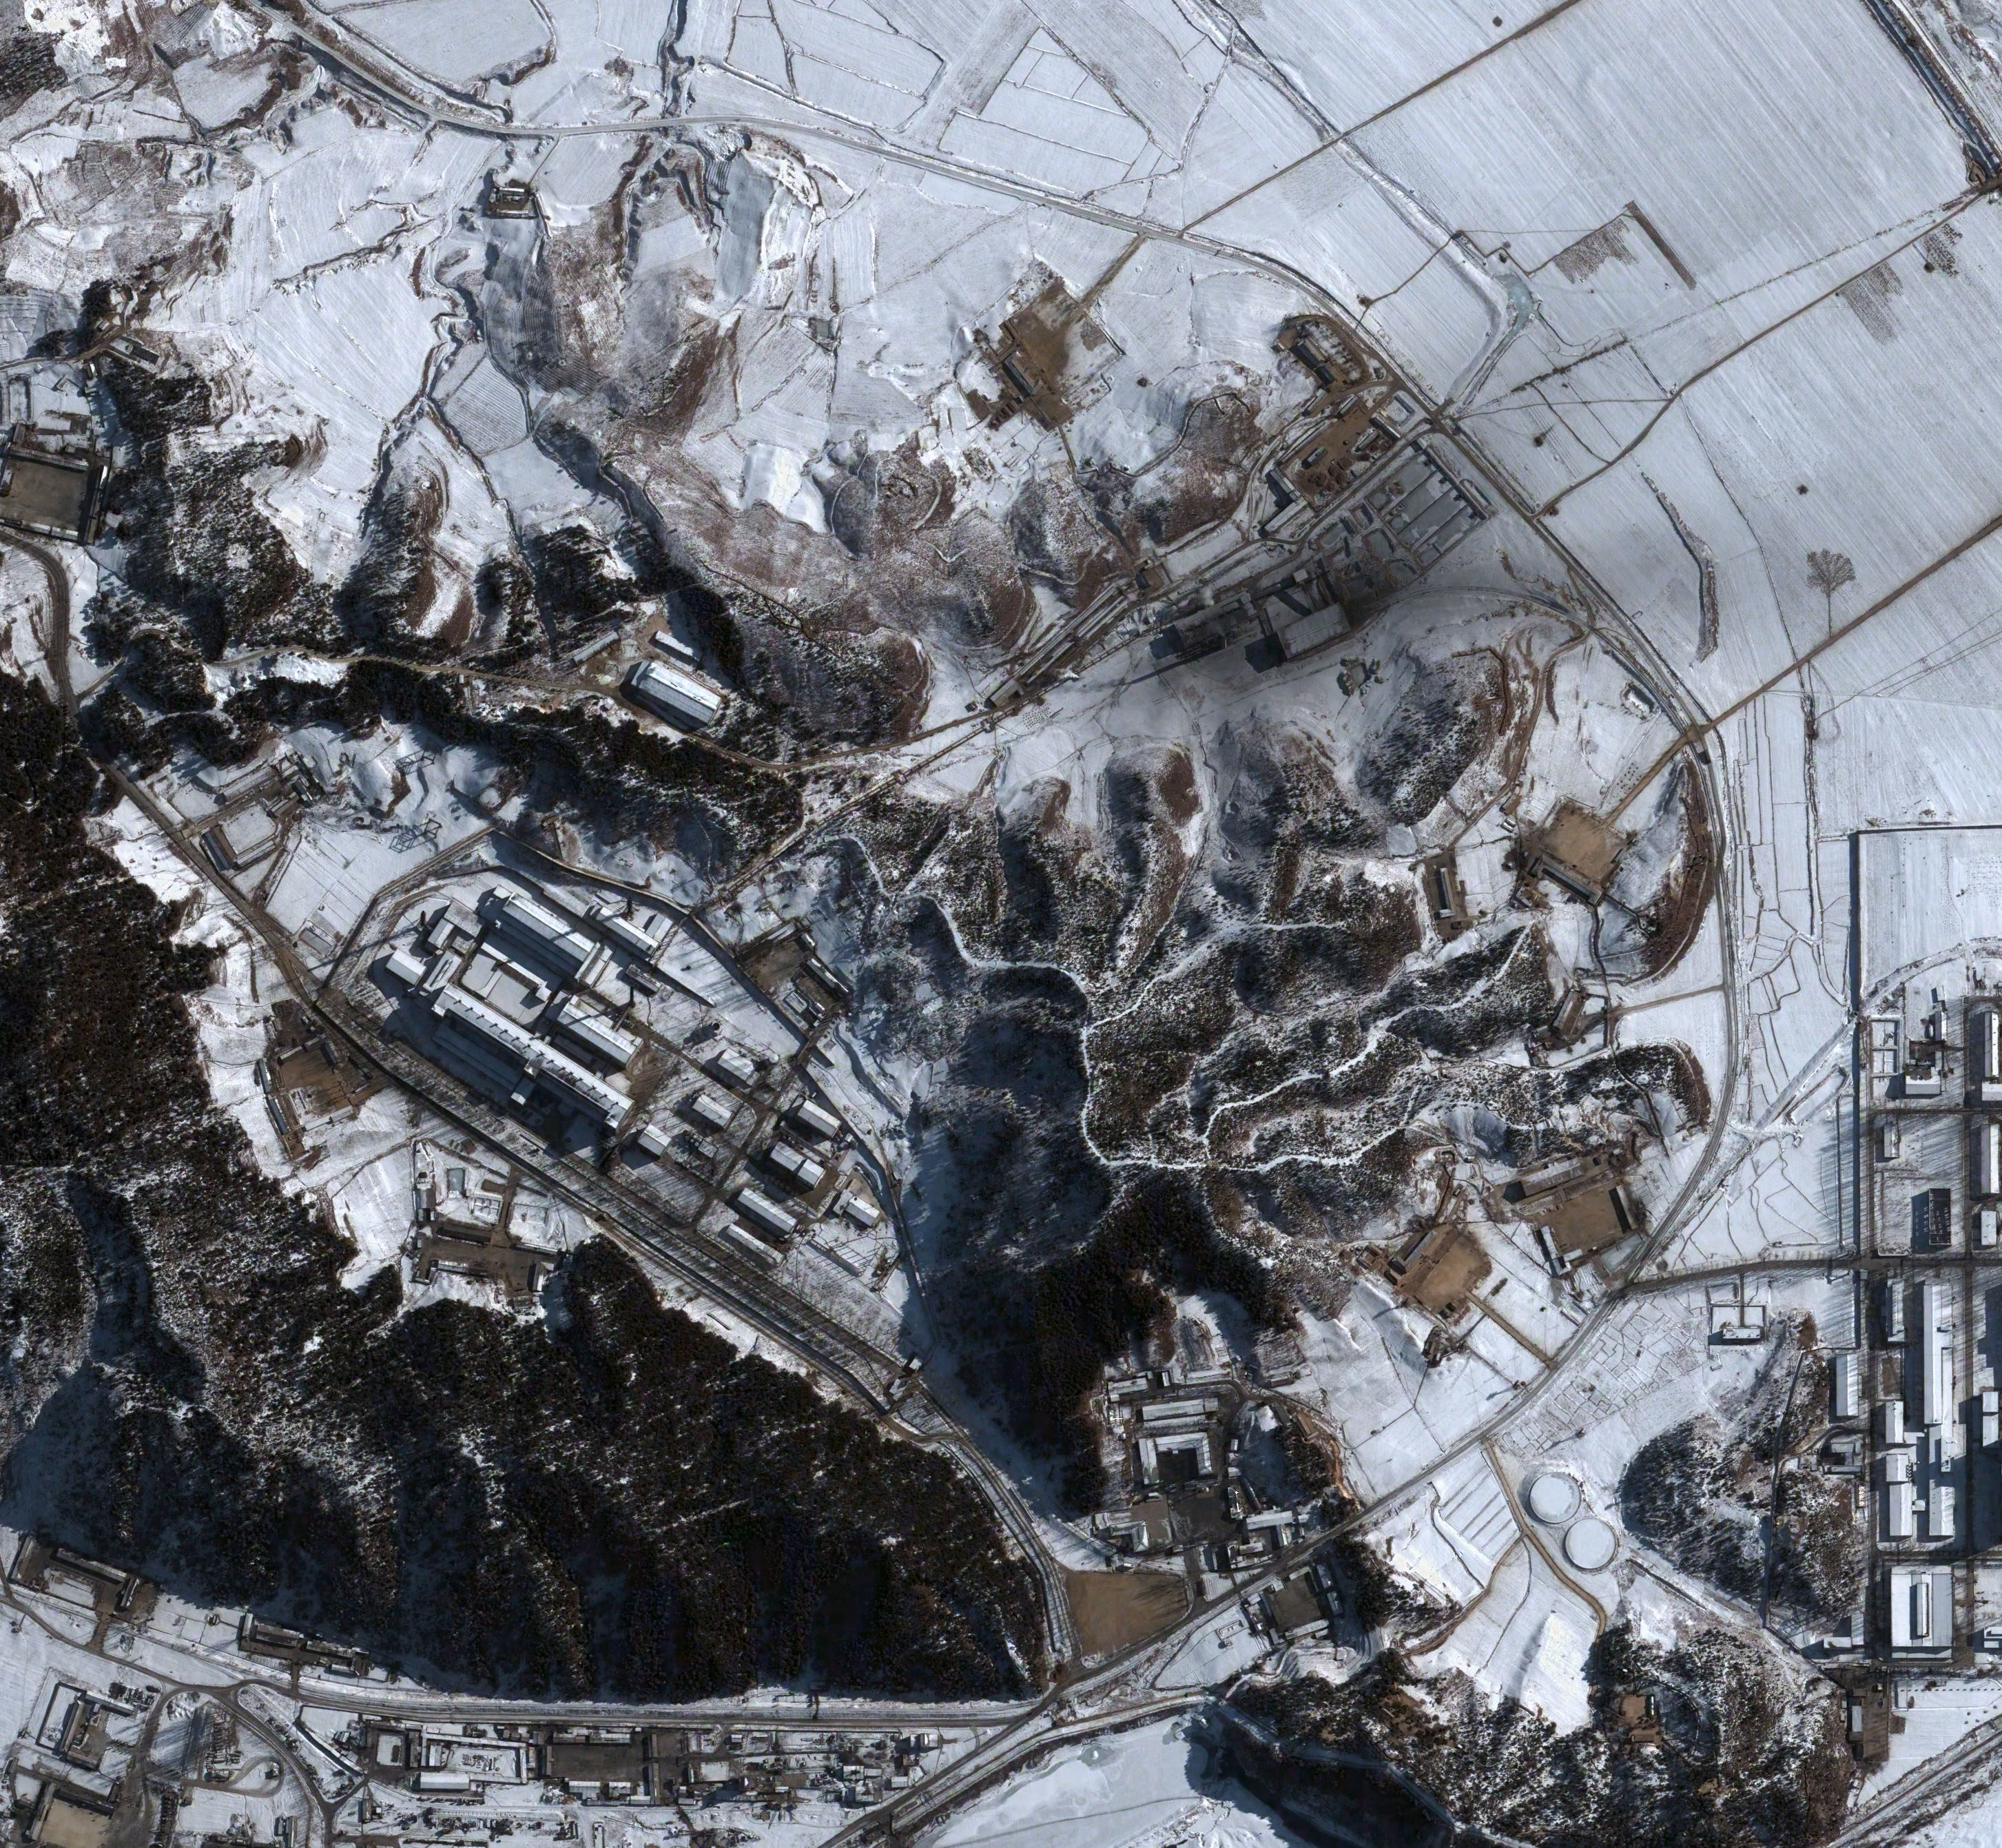 A satellite image of the coal fire steam plant and reprocessing facility of North Korea's Yongbyon Nuclear Scientific Research Center taken in January 2003.